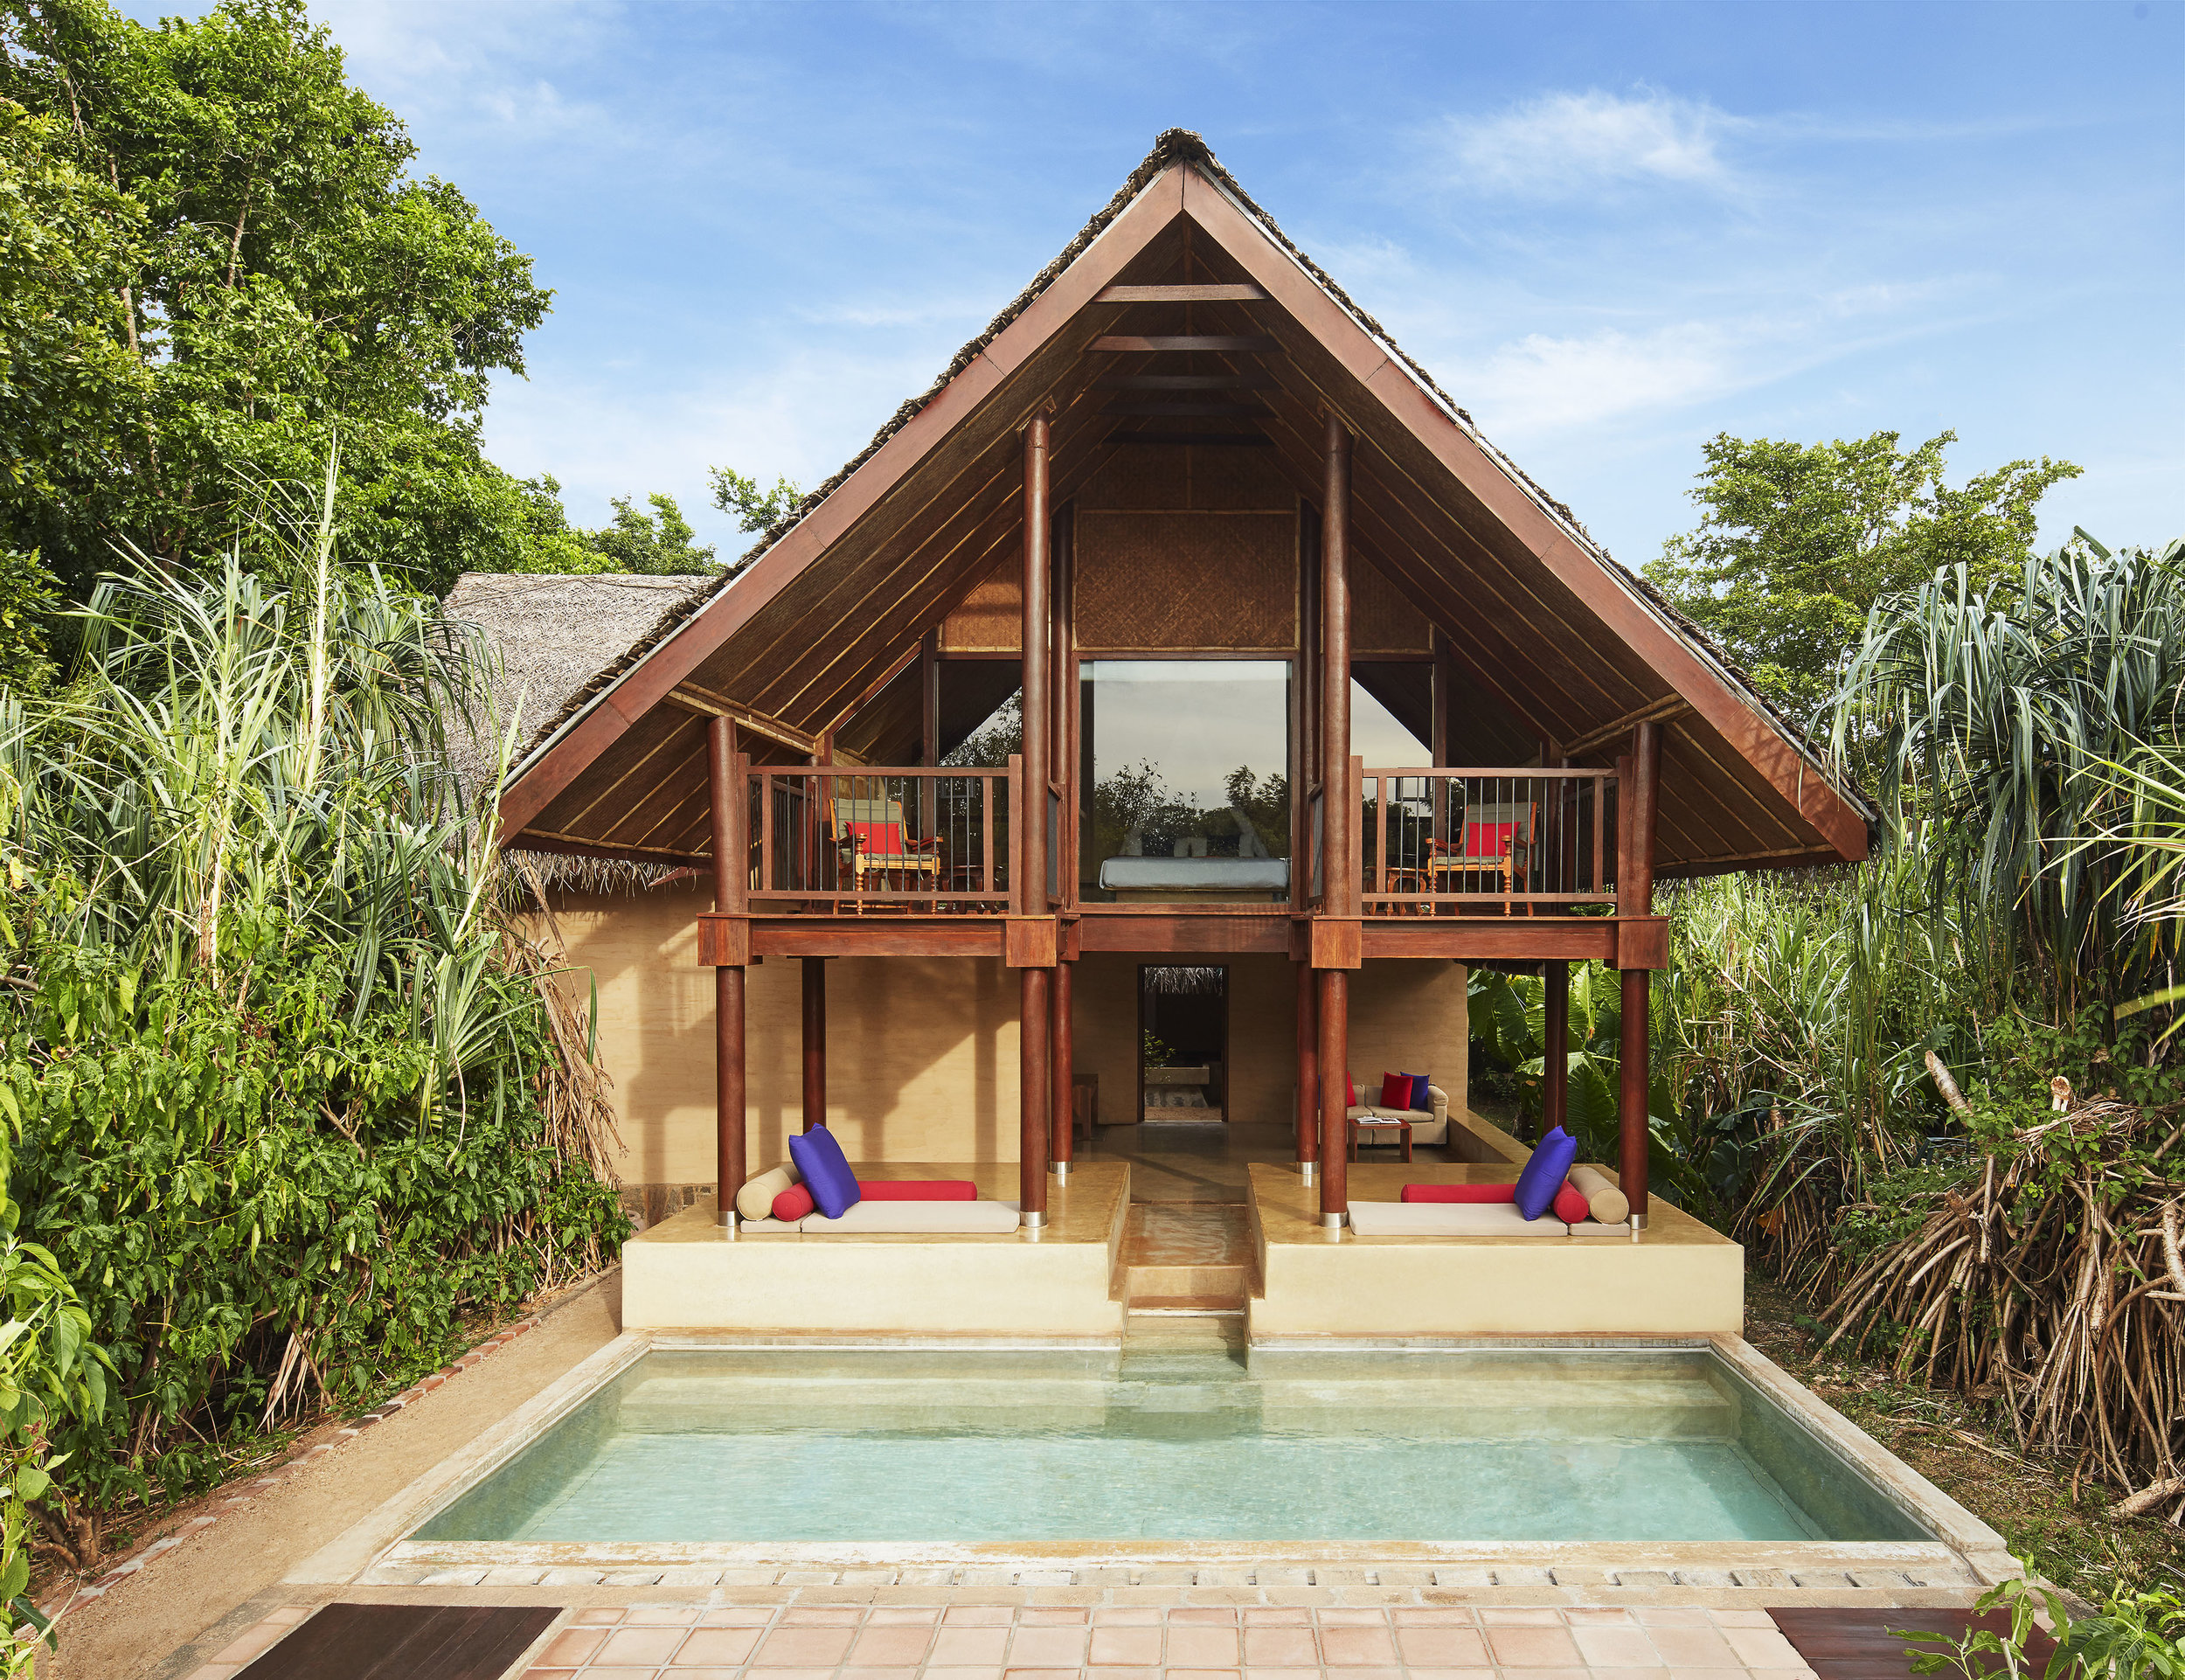 invite-to-paradise-sri-lanka-specialists-experts-travel-agent-tour-operator-jetwing-viluyana-hotel-cultural-triangle-dwelling-bedroom-forest-exterior.jpg